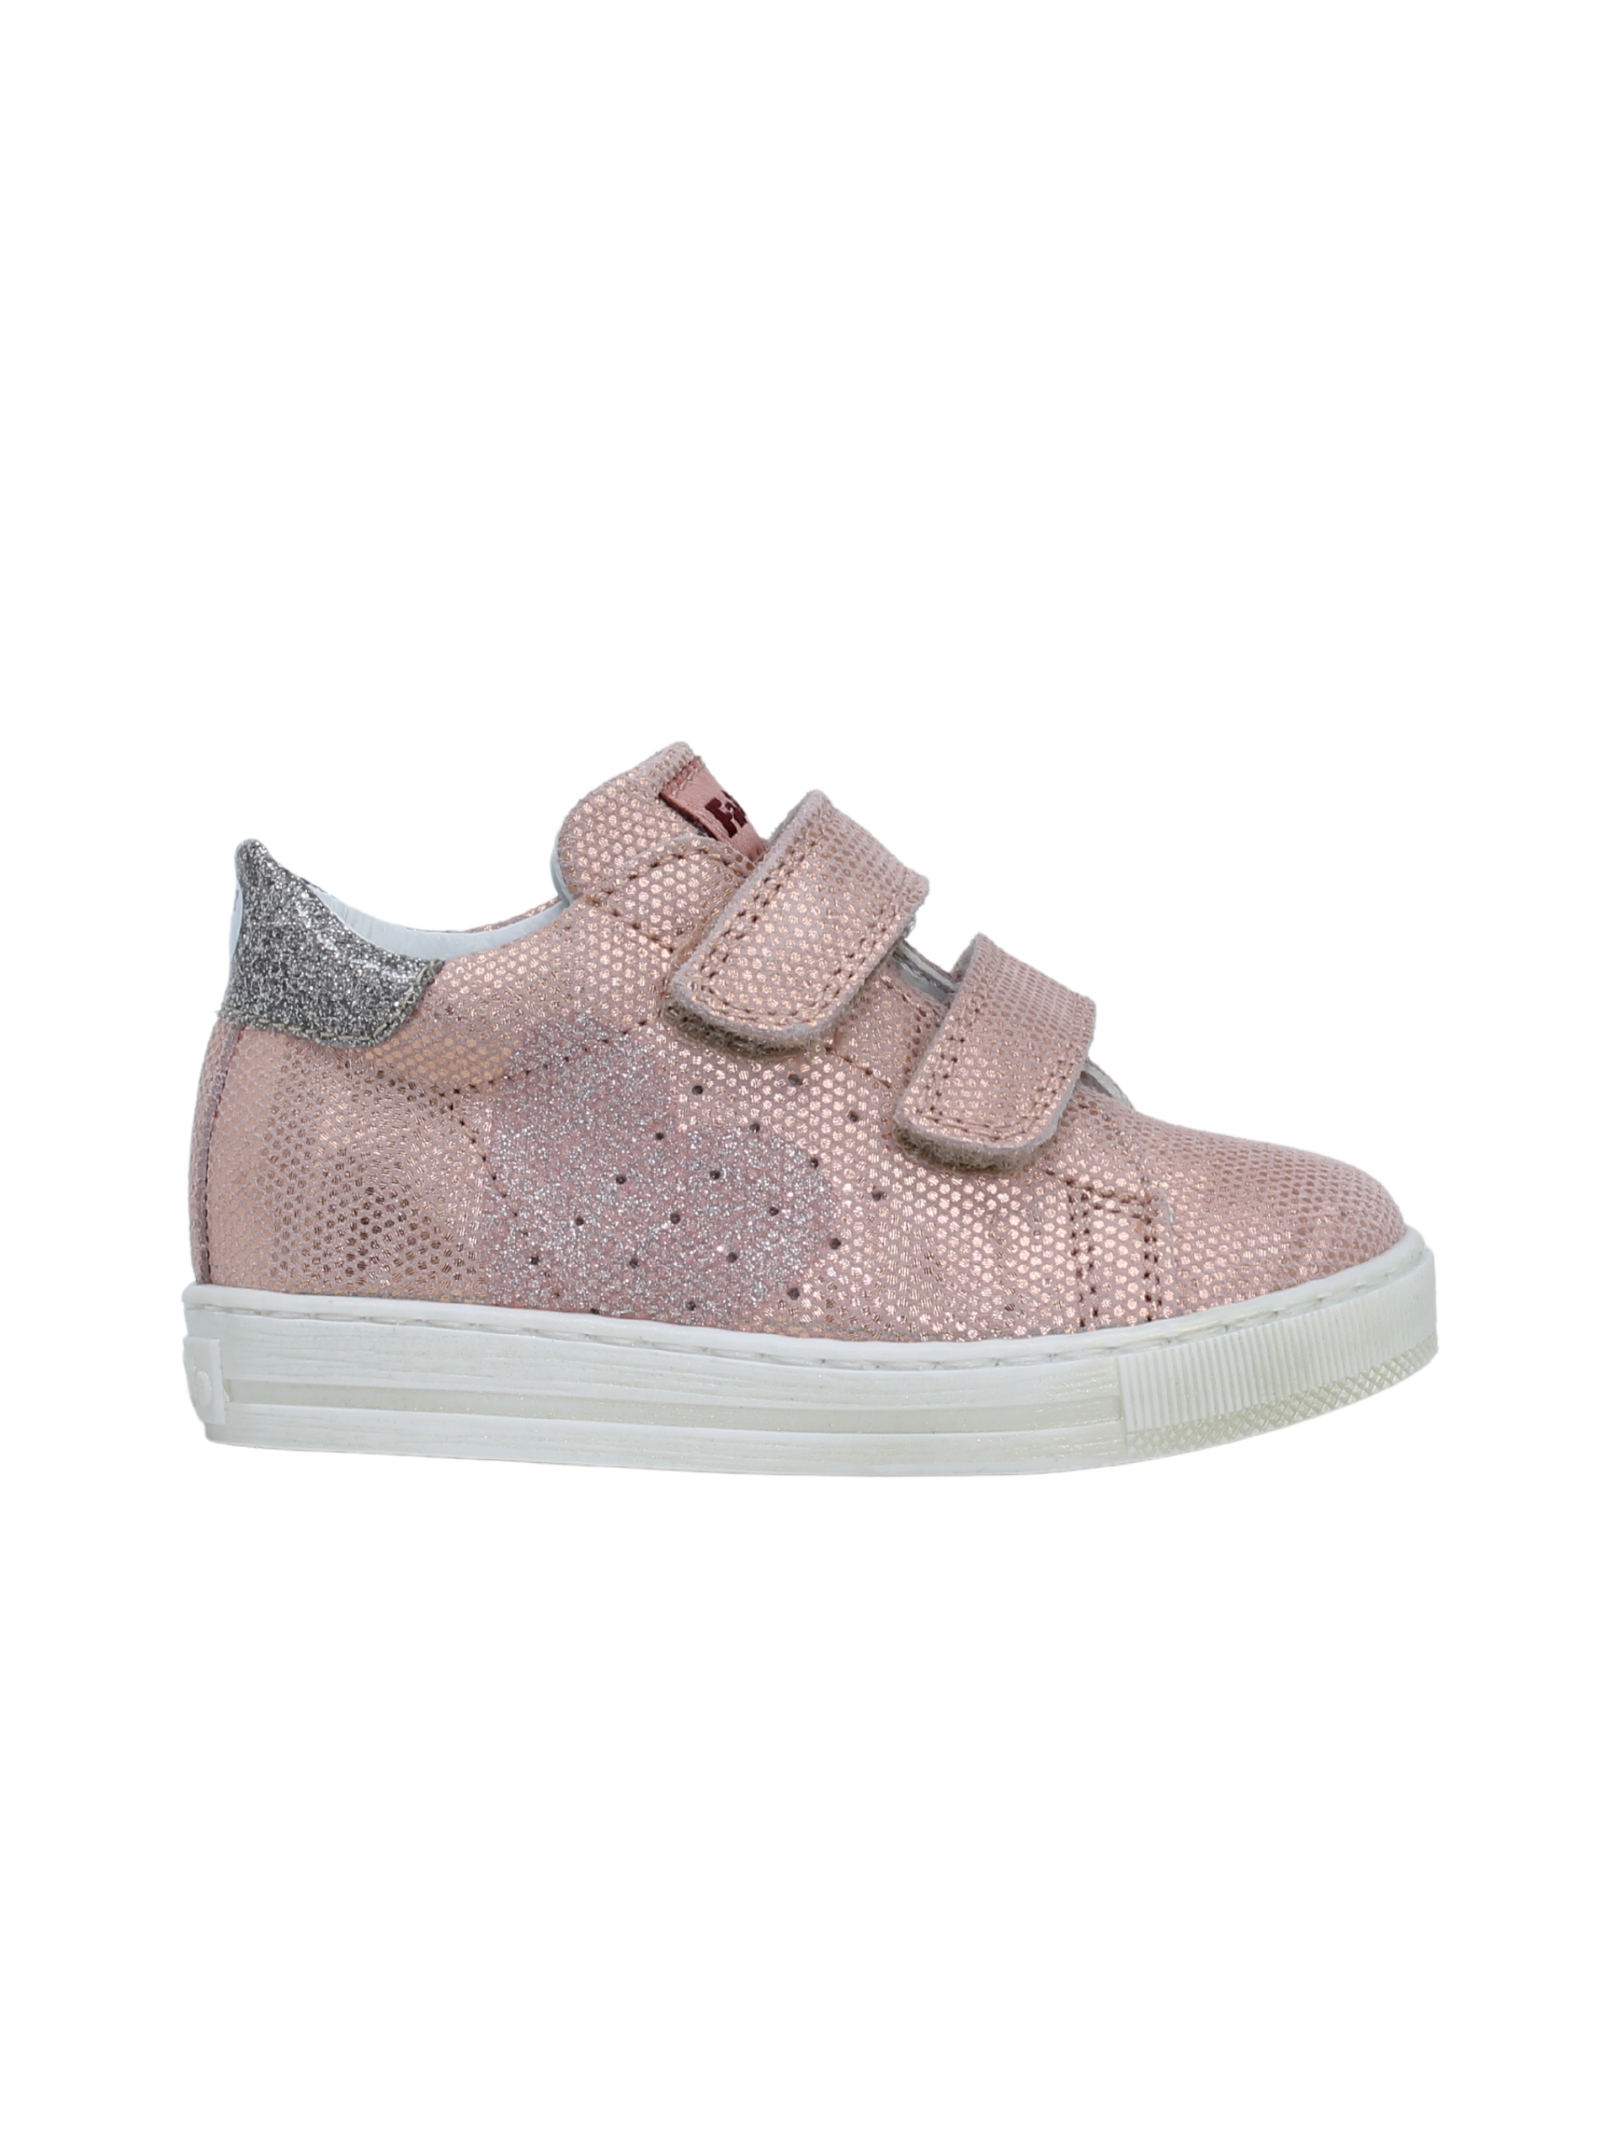 FALCOTTO | Sneakers | 20141181M19